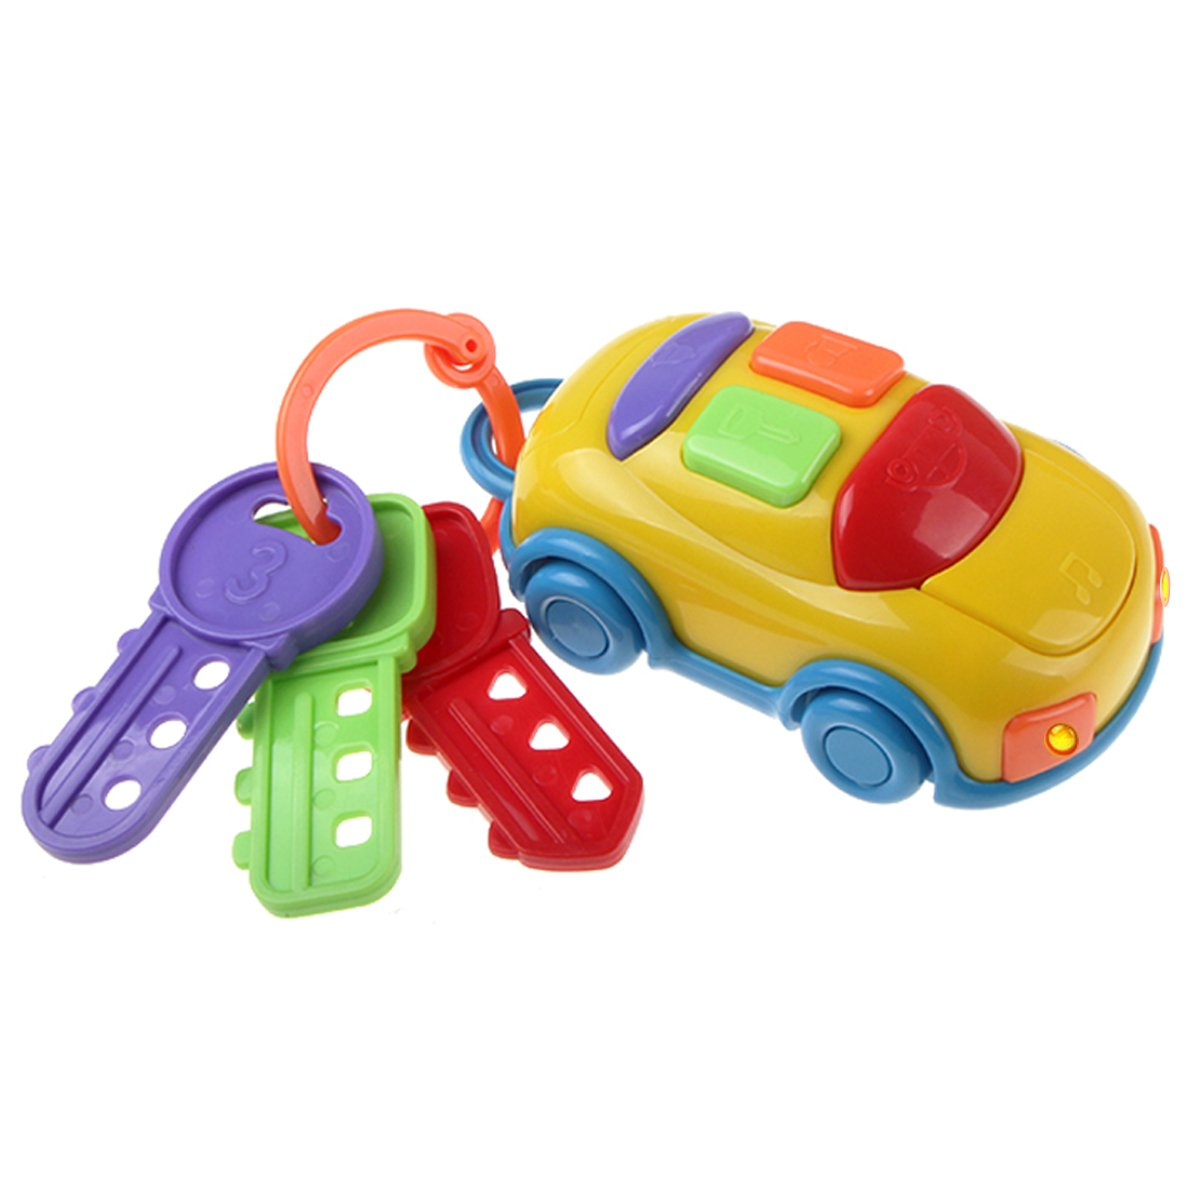 UTOPP Musical Car Keys Car Alarm Real Car Sounds with Two Head Lights Baby Kids Educational Toys